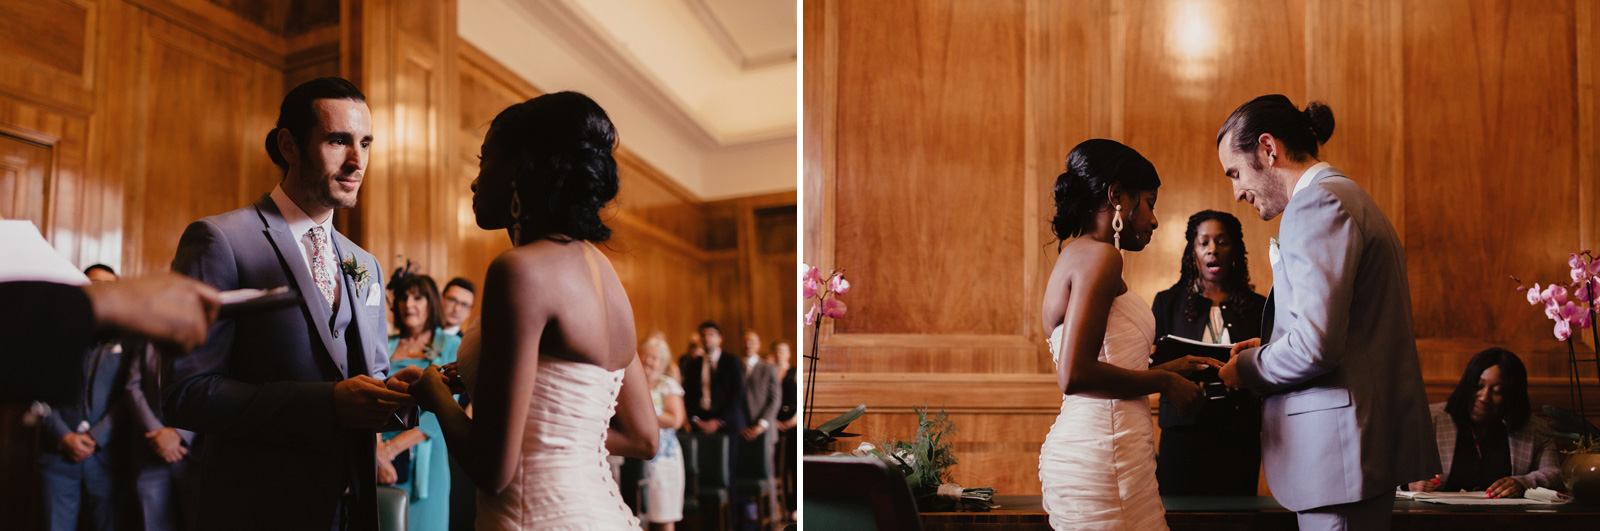 A beautiful wedding at Hackney Town Hall by Essex Wedding Photogapher Chris Bradshaw